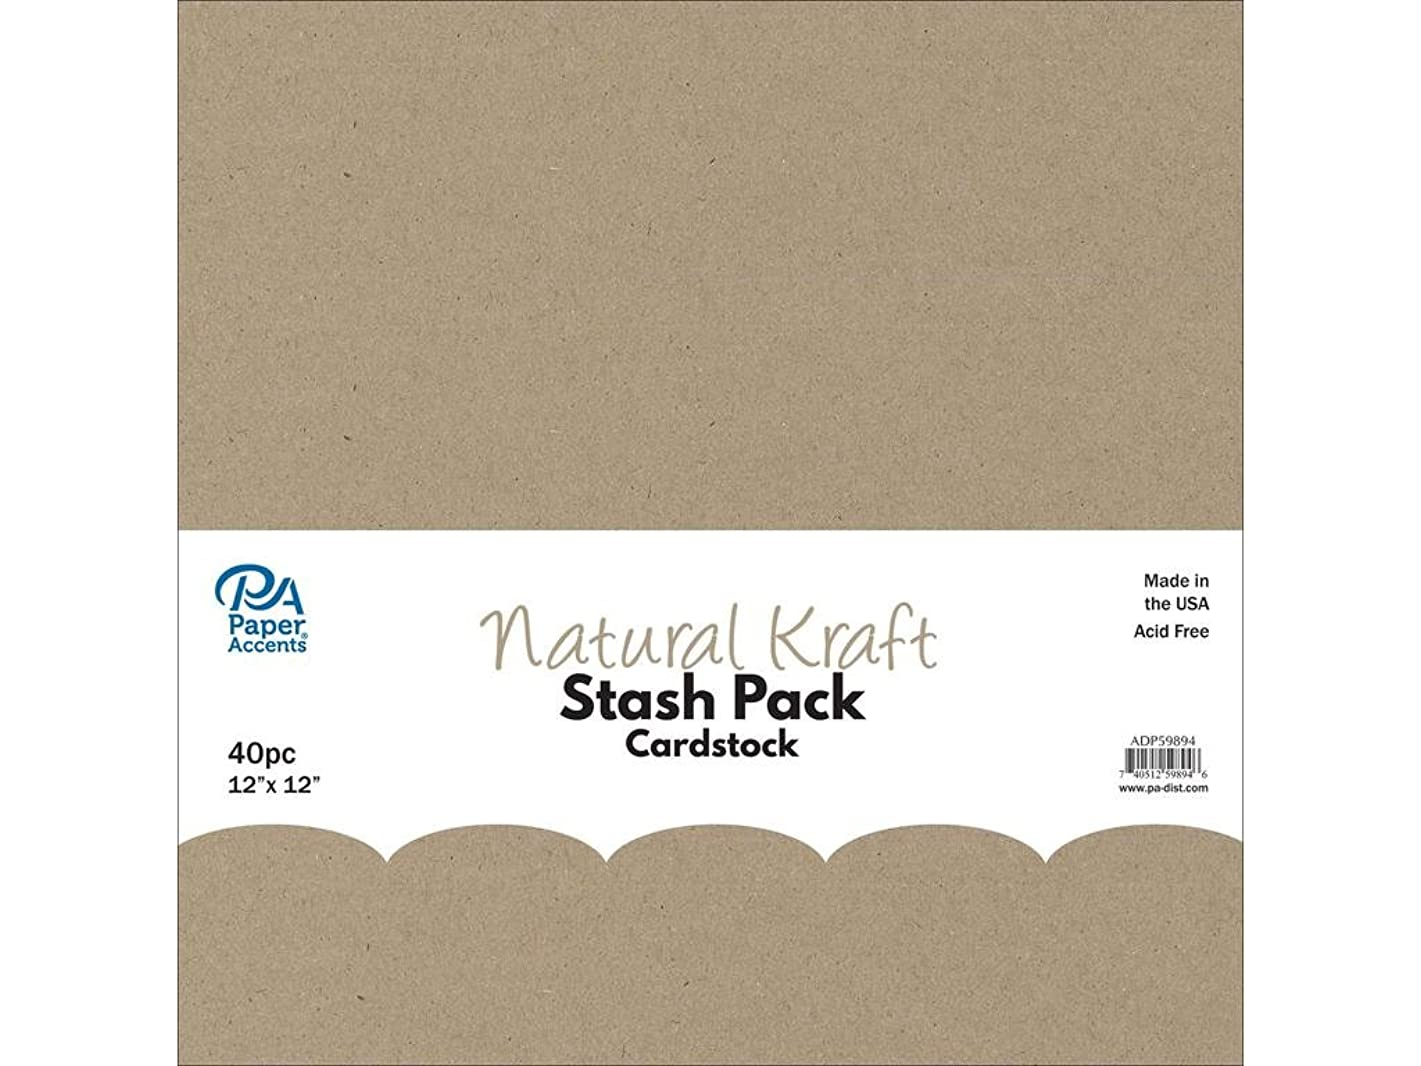 Paper Accents 40pc Stash Pack 12x12 Natural Kraft